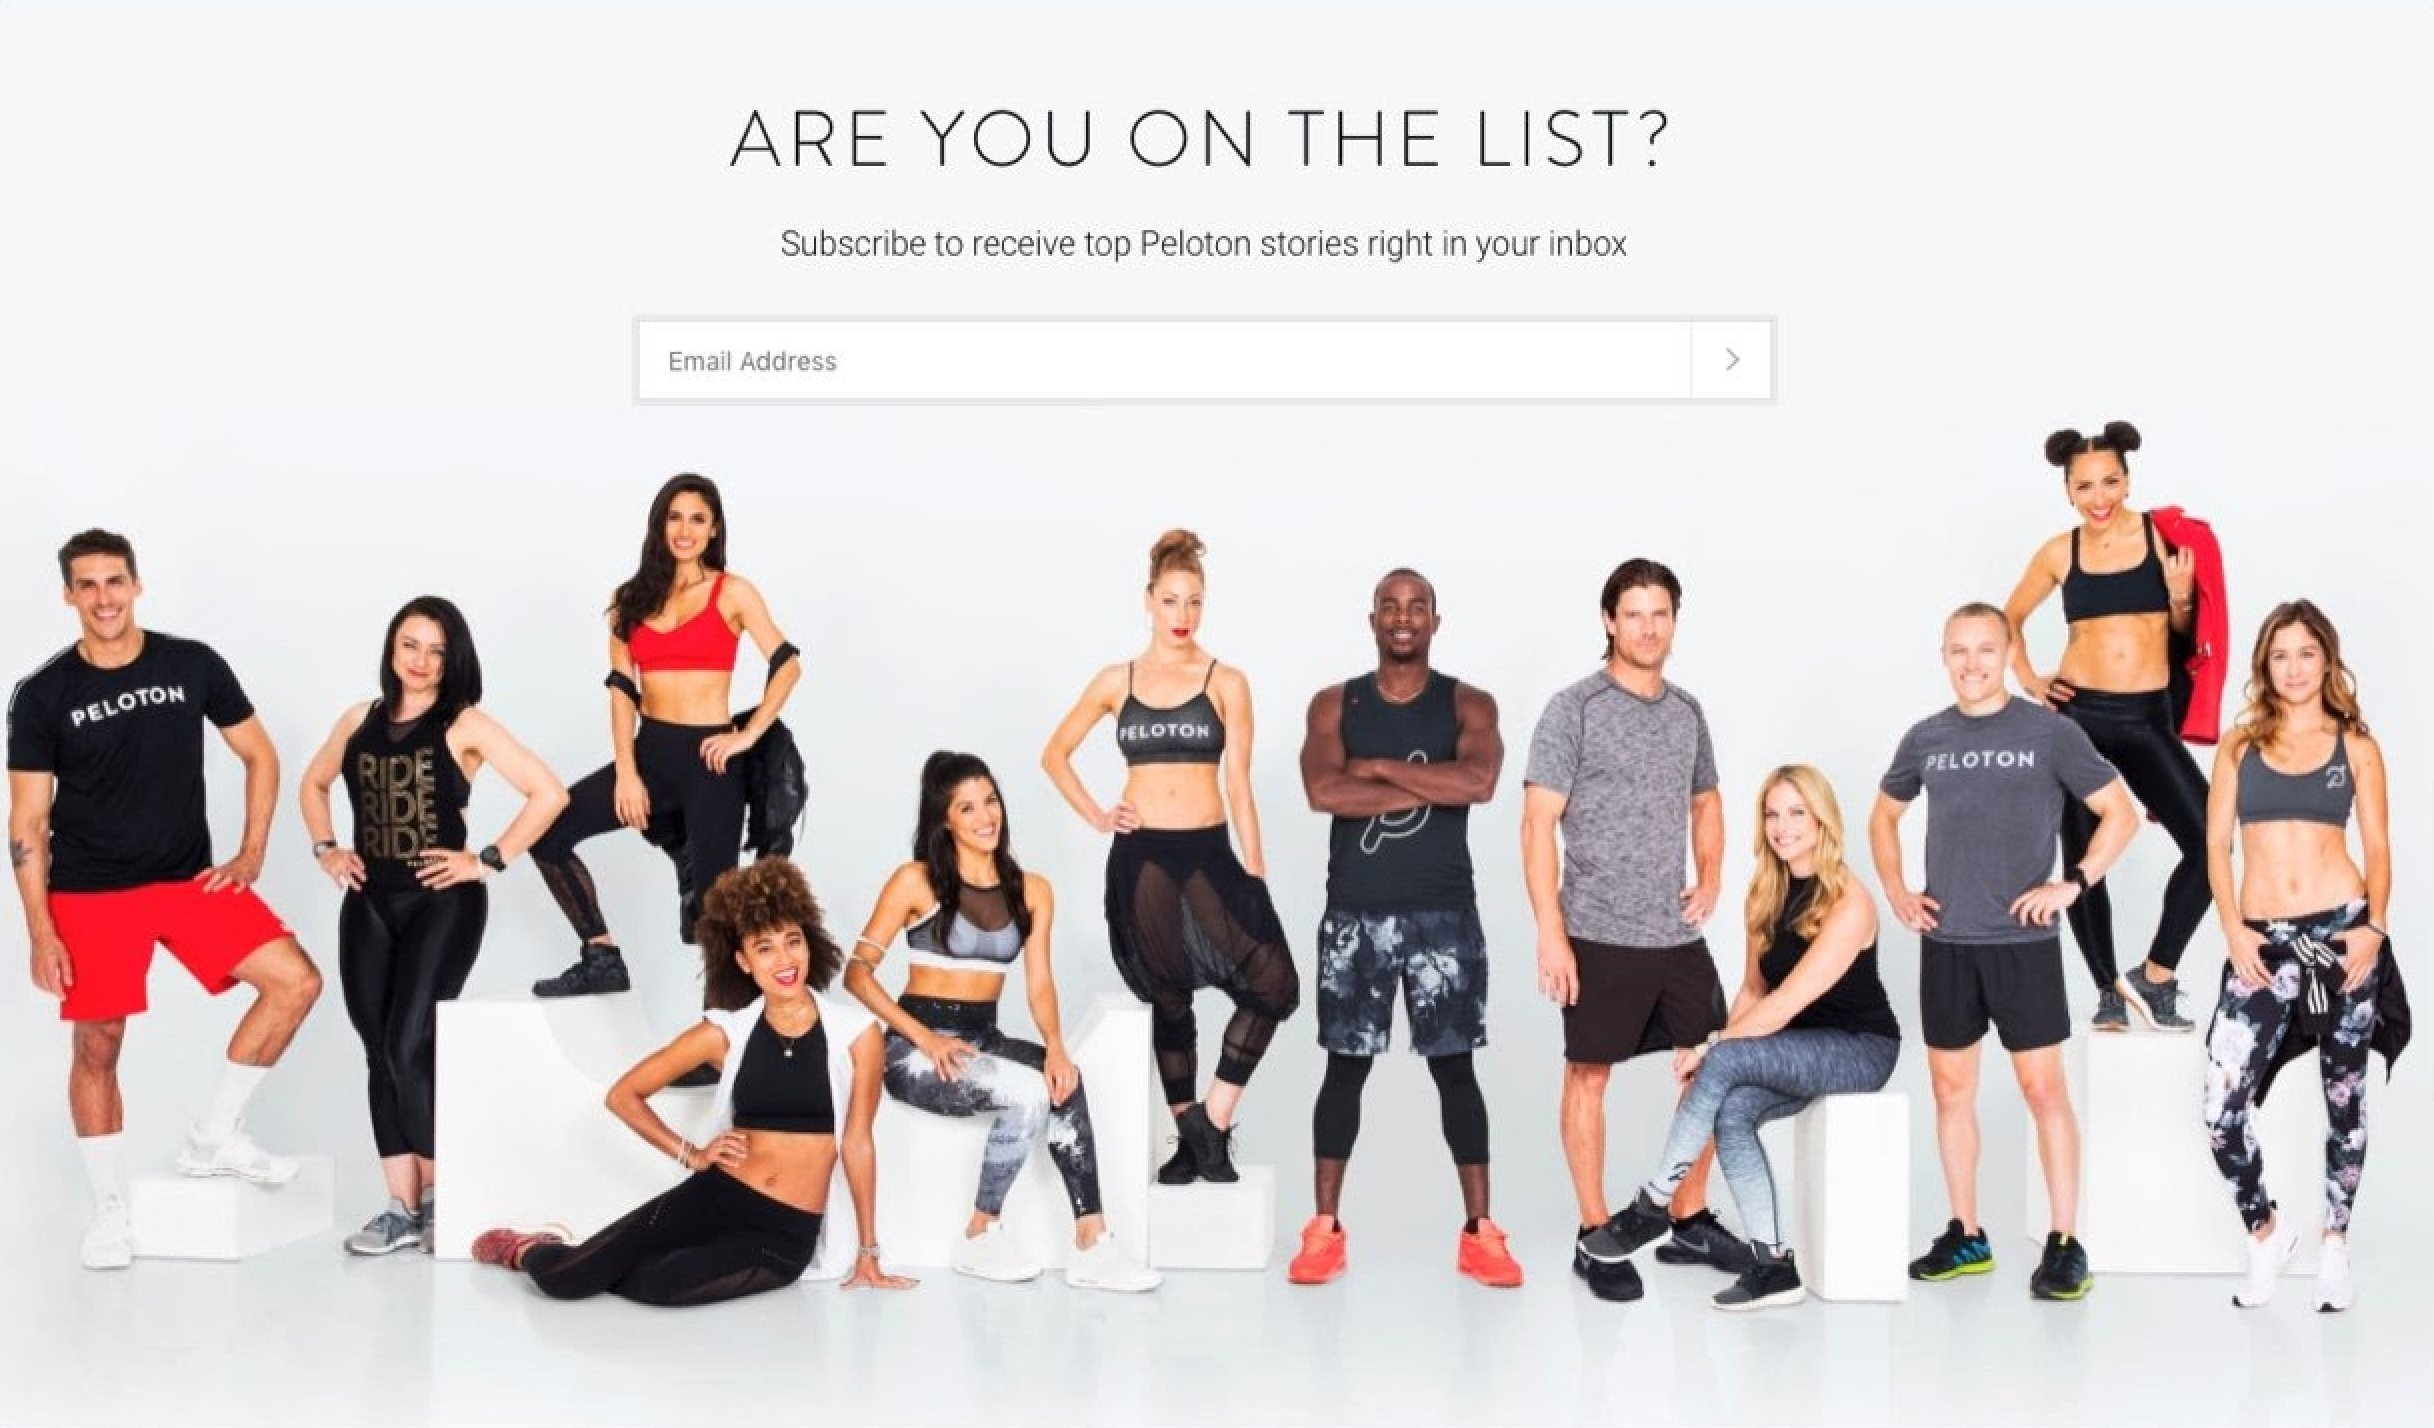 Peloton email subscription form example are you on the list